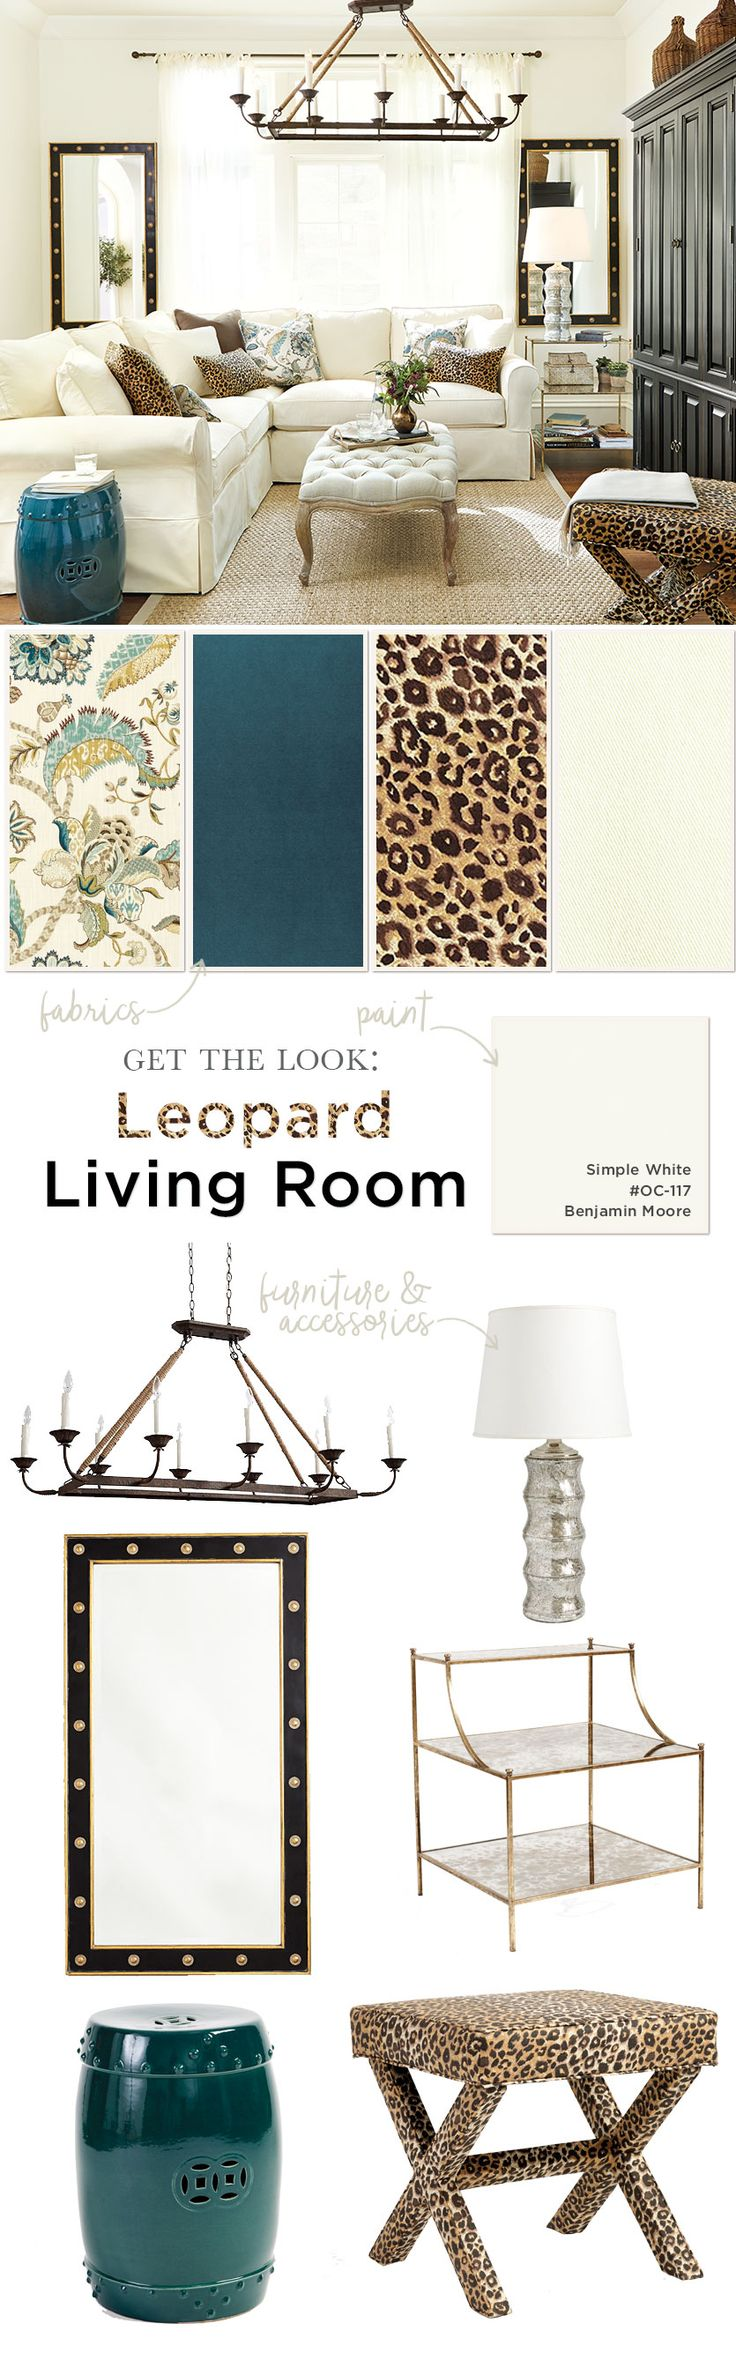 We admit it, we think leopard is a neutral! Its a chic pattern that can go anywhere, anytime. We love the way it punctuates...